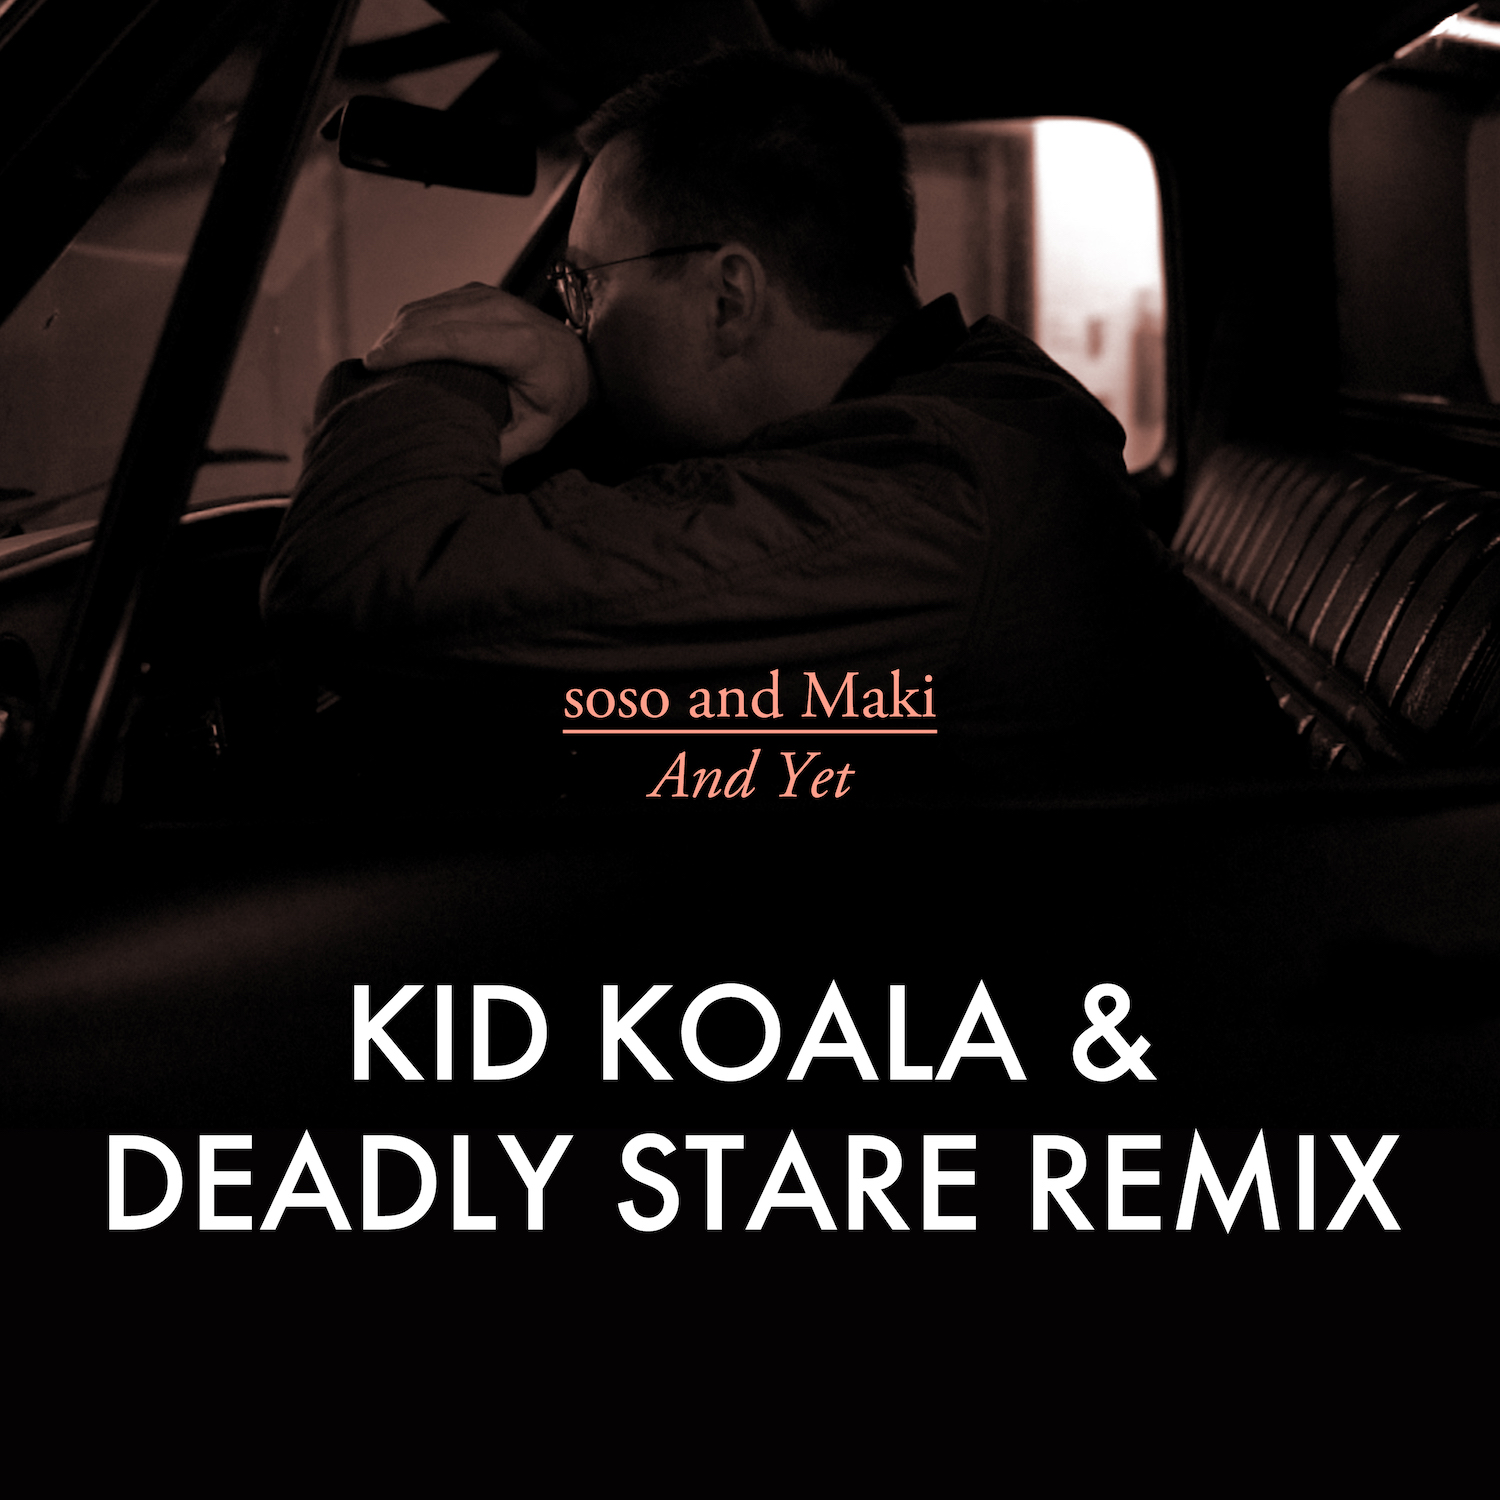 soso and Maki - And Yet - Kid Koala and Deadly Stare Remix